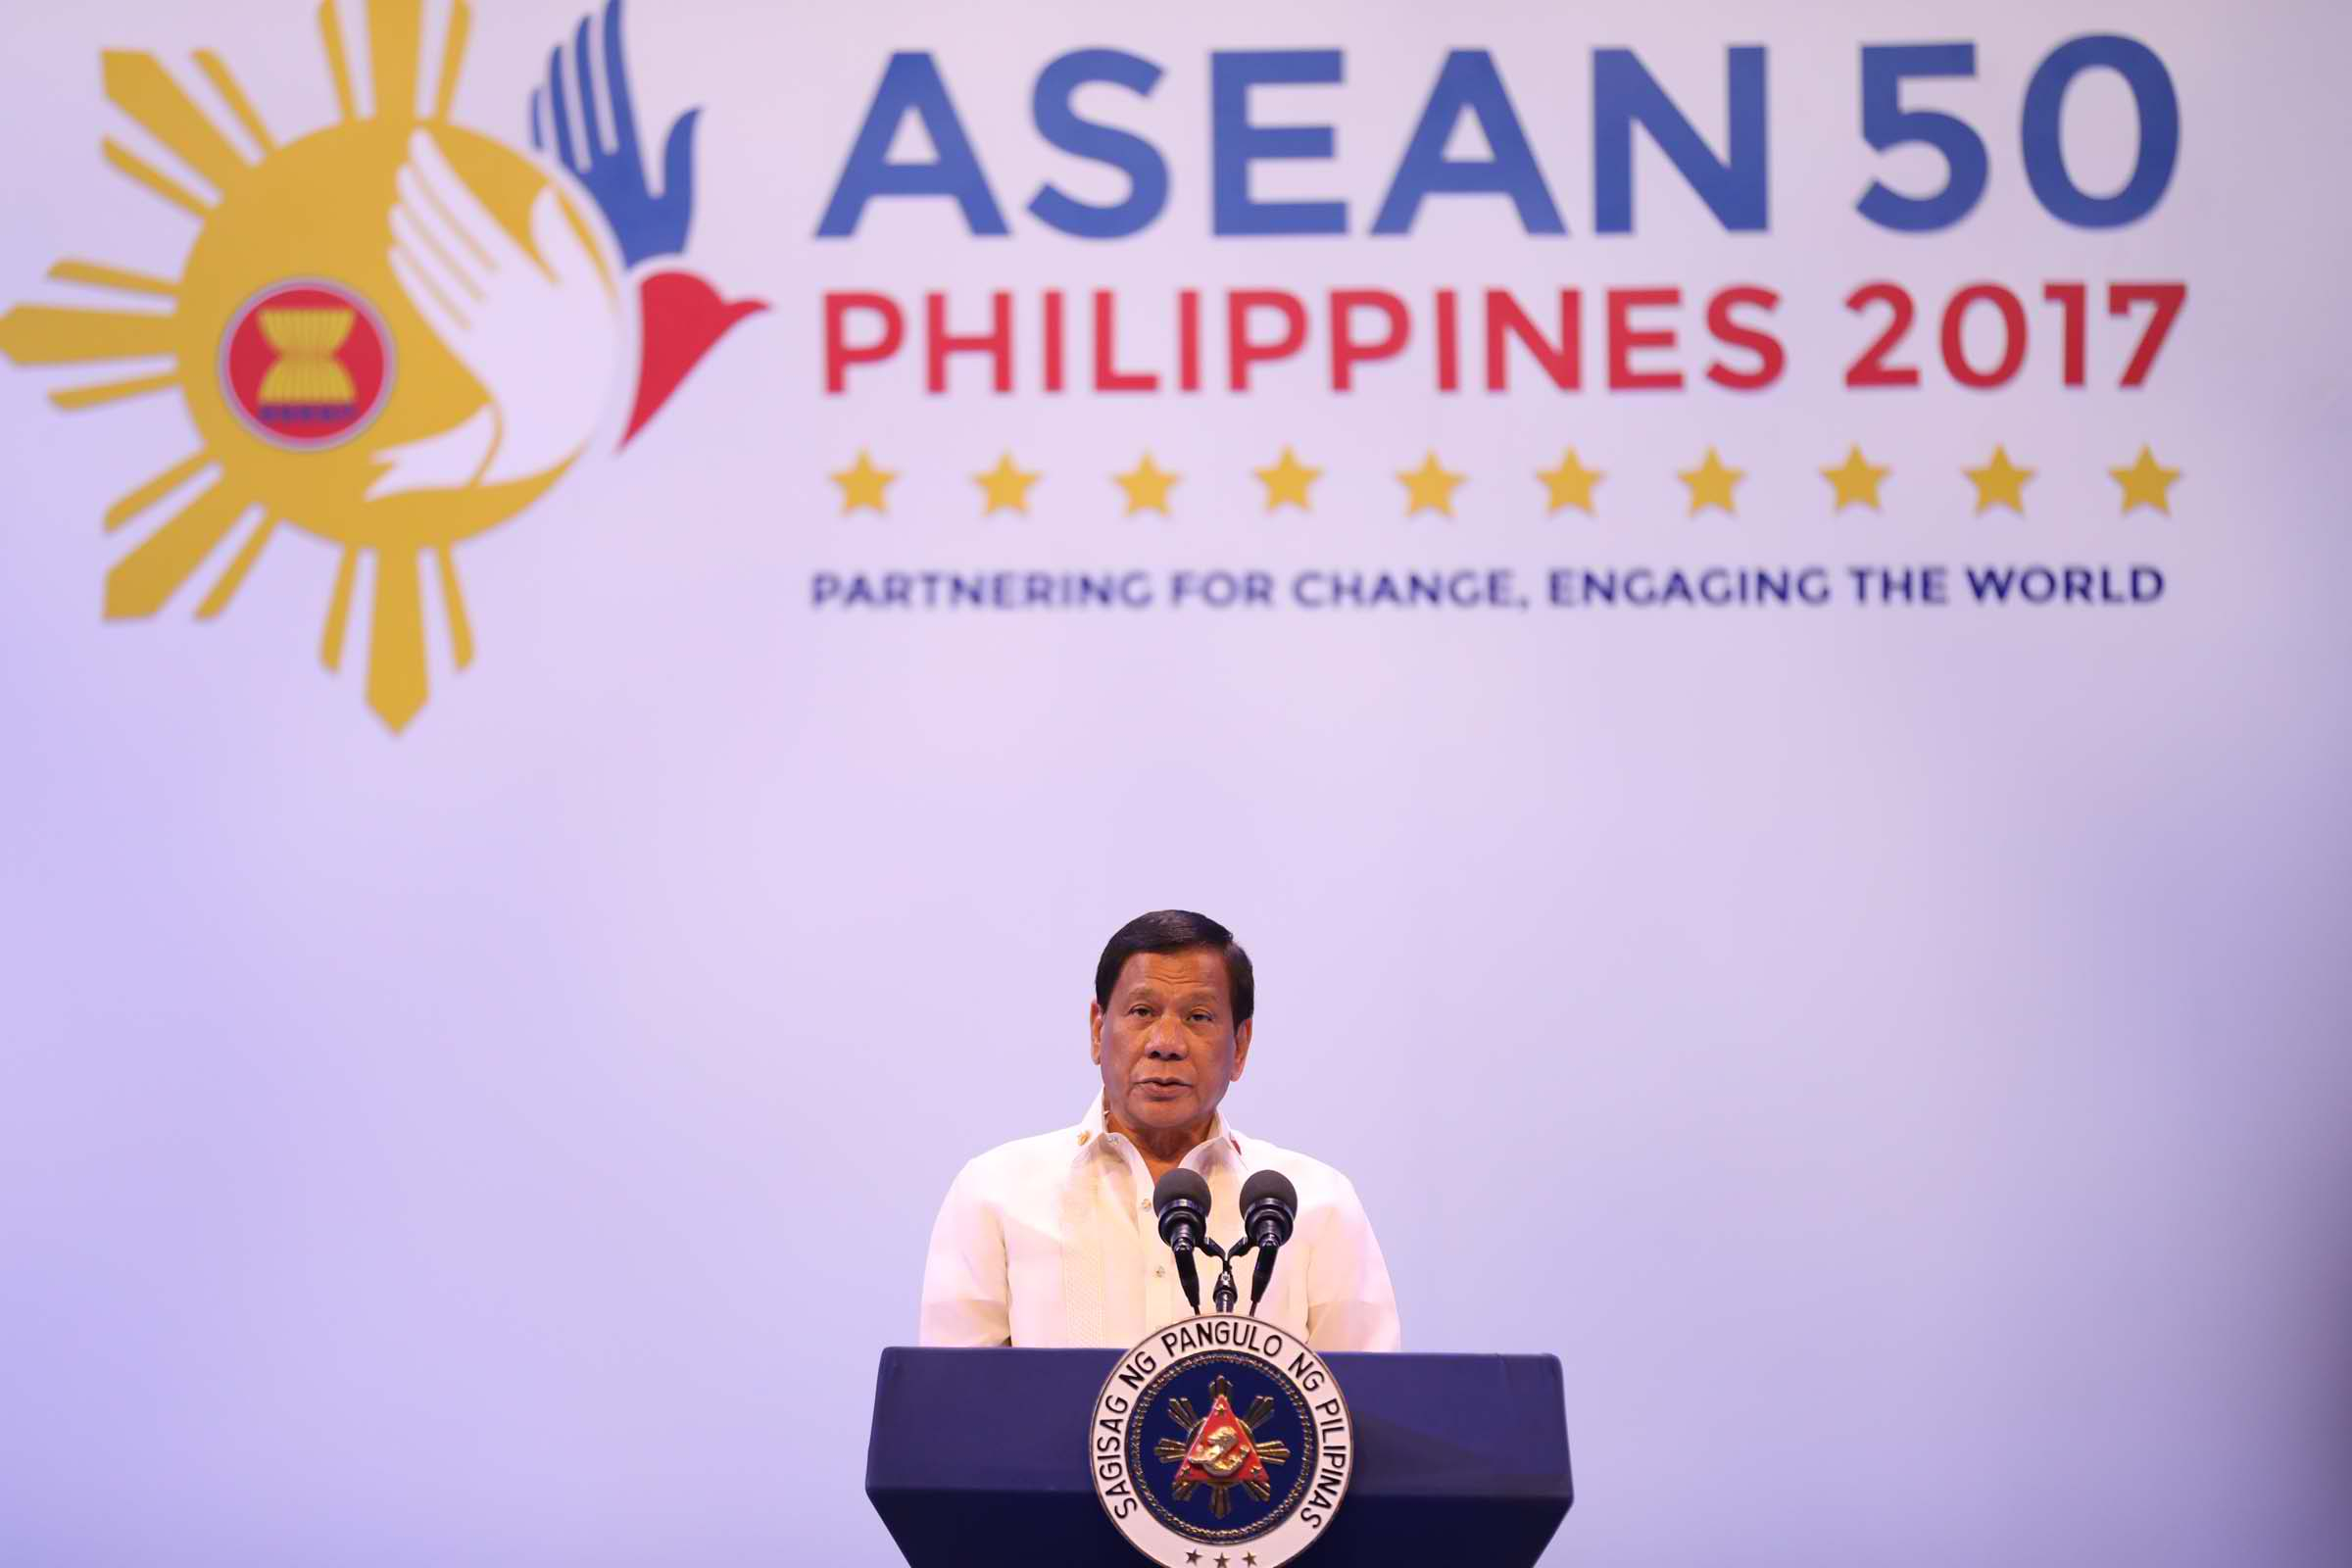 """We acknowledged the importance of ASEAN cooperation in addressing issues that affect peace, security, and prosperity of the region, including terrorism, violent extremism, piracy, human trafficking, and illegal drugs,"" he said as he faced the media prior to his hosting of the gala dinner for the visiting Heads of States and Governments. (Photo: Avito C. Dalan/ Philippine News Agency)"